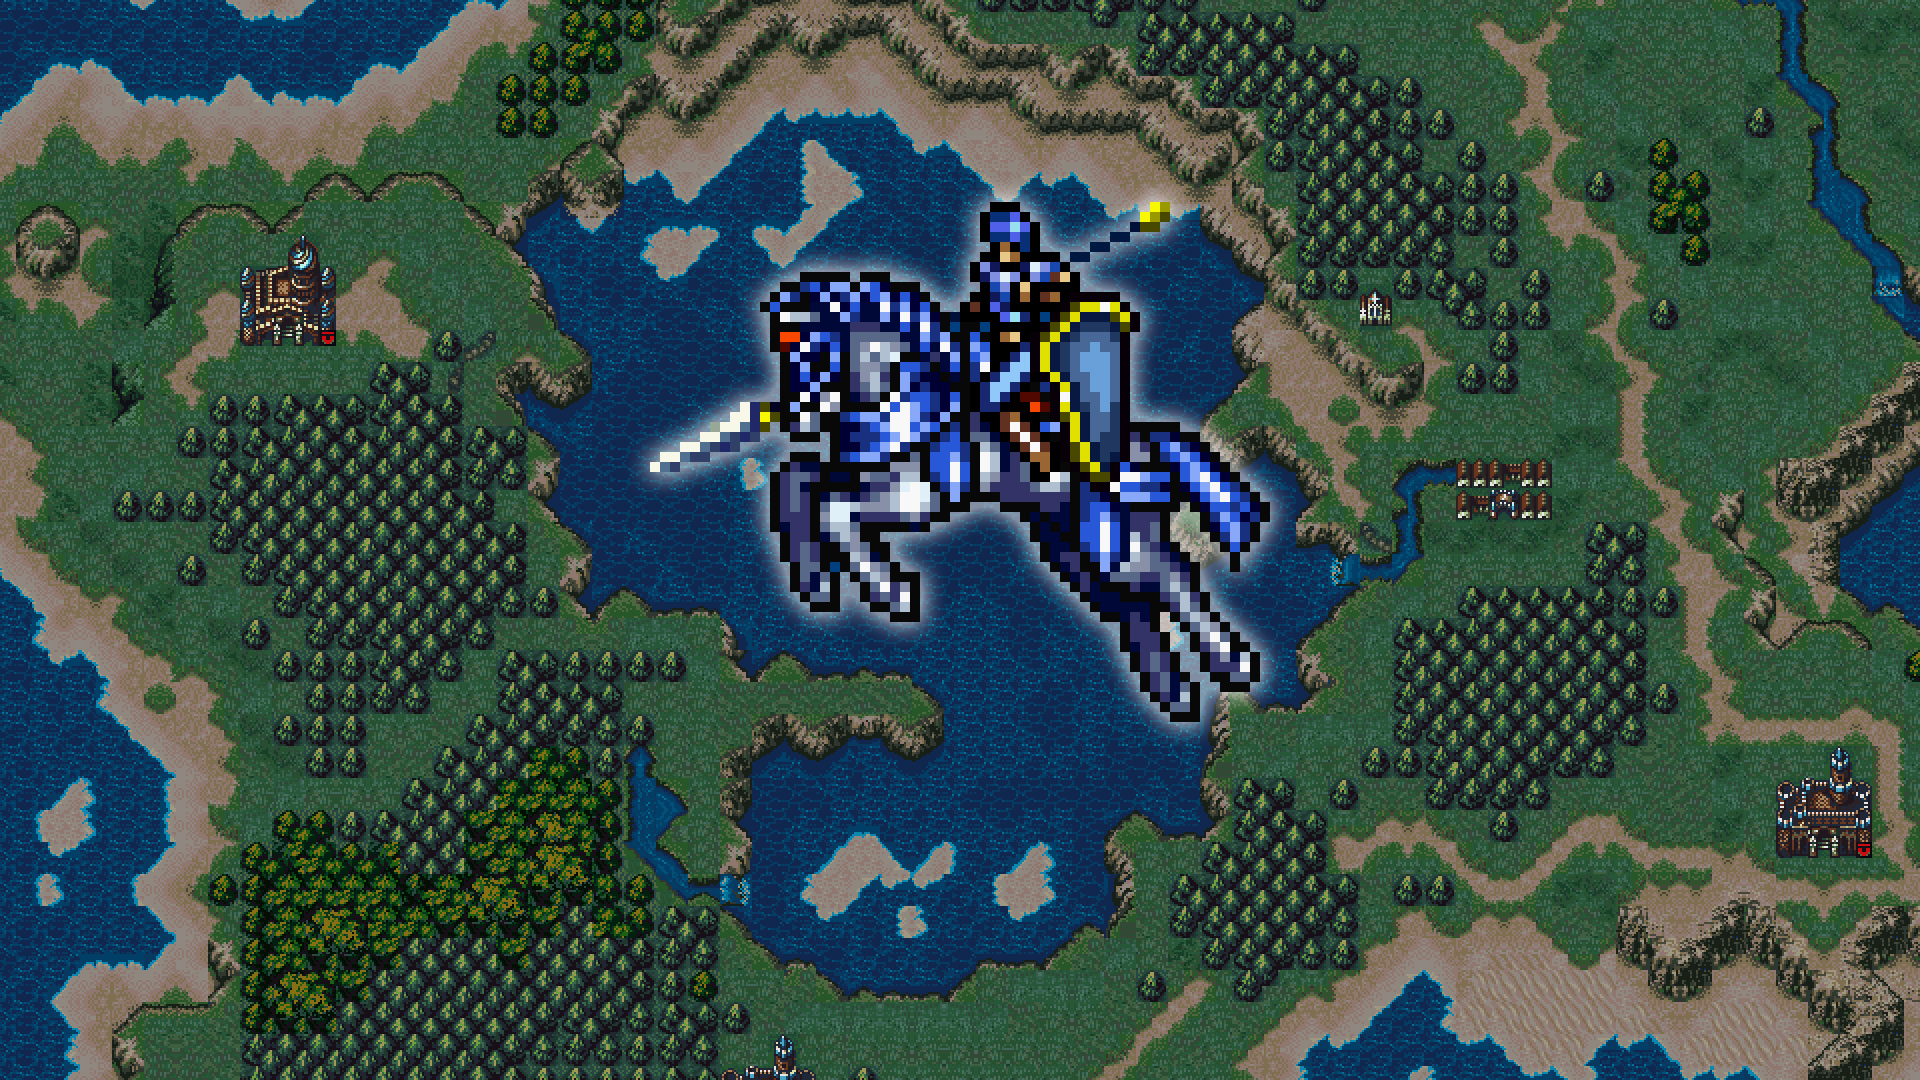 An iconic pegasus knight soars over the land in Fire Emblem: Genaelogy of the Holy War.